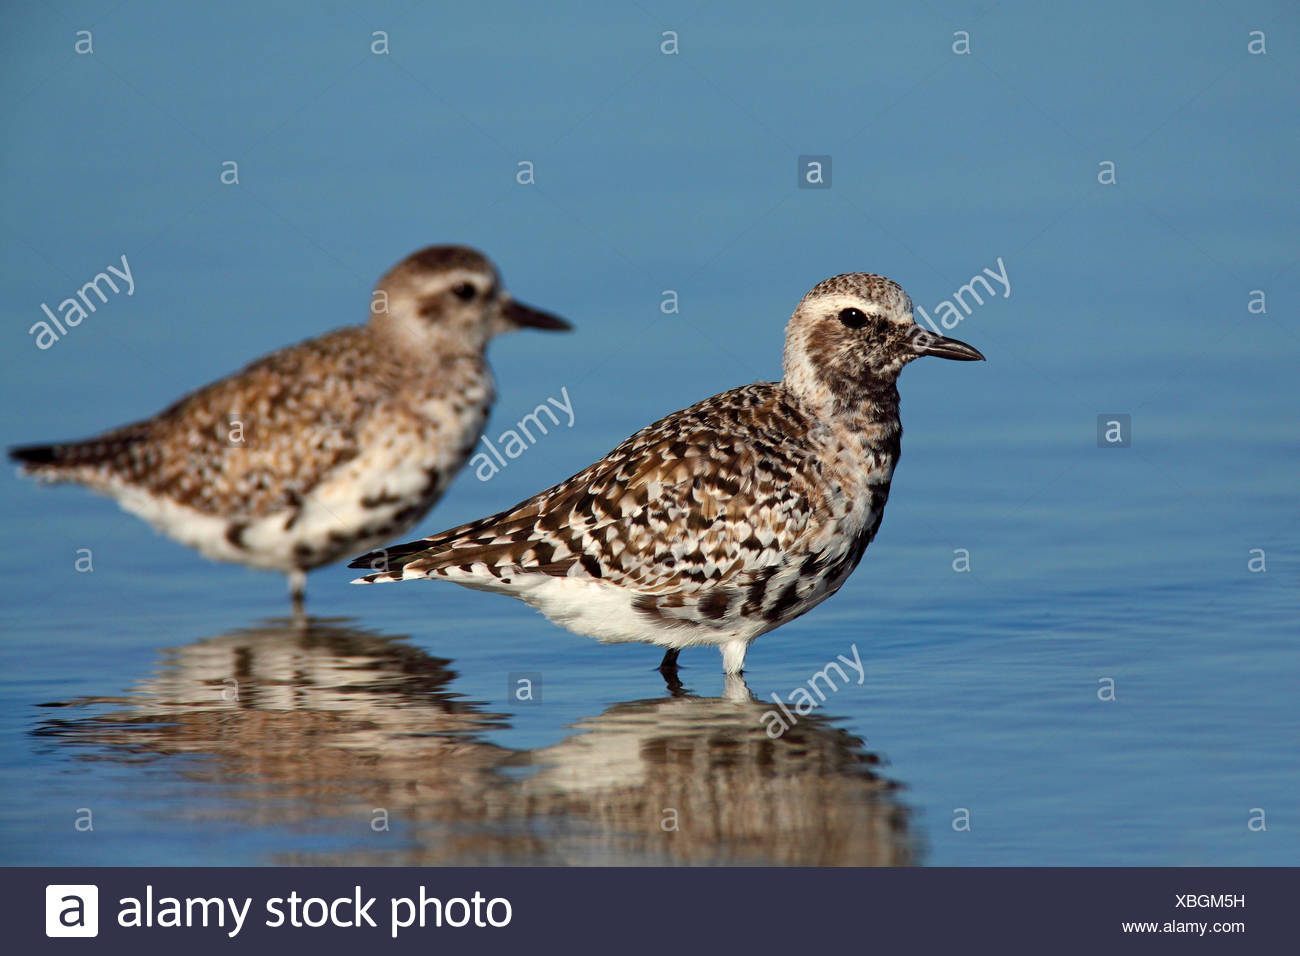 grey plover (Pluvialis squatarola), birds in winter plumage and in transition to breeding plumage, USA, Florida - Stock Image